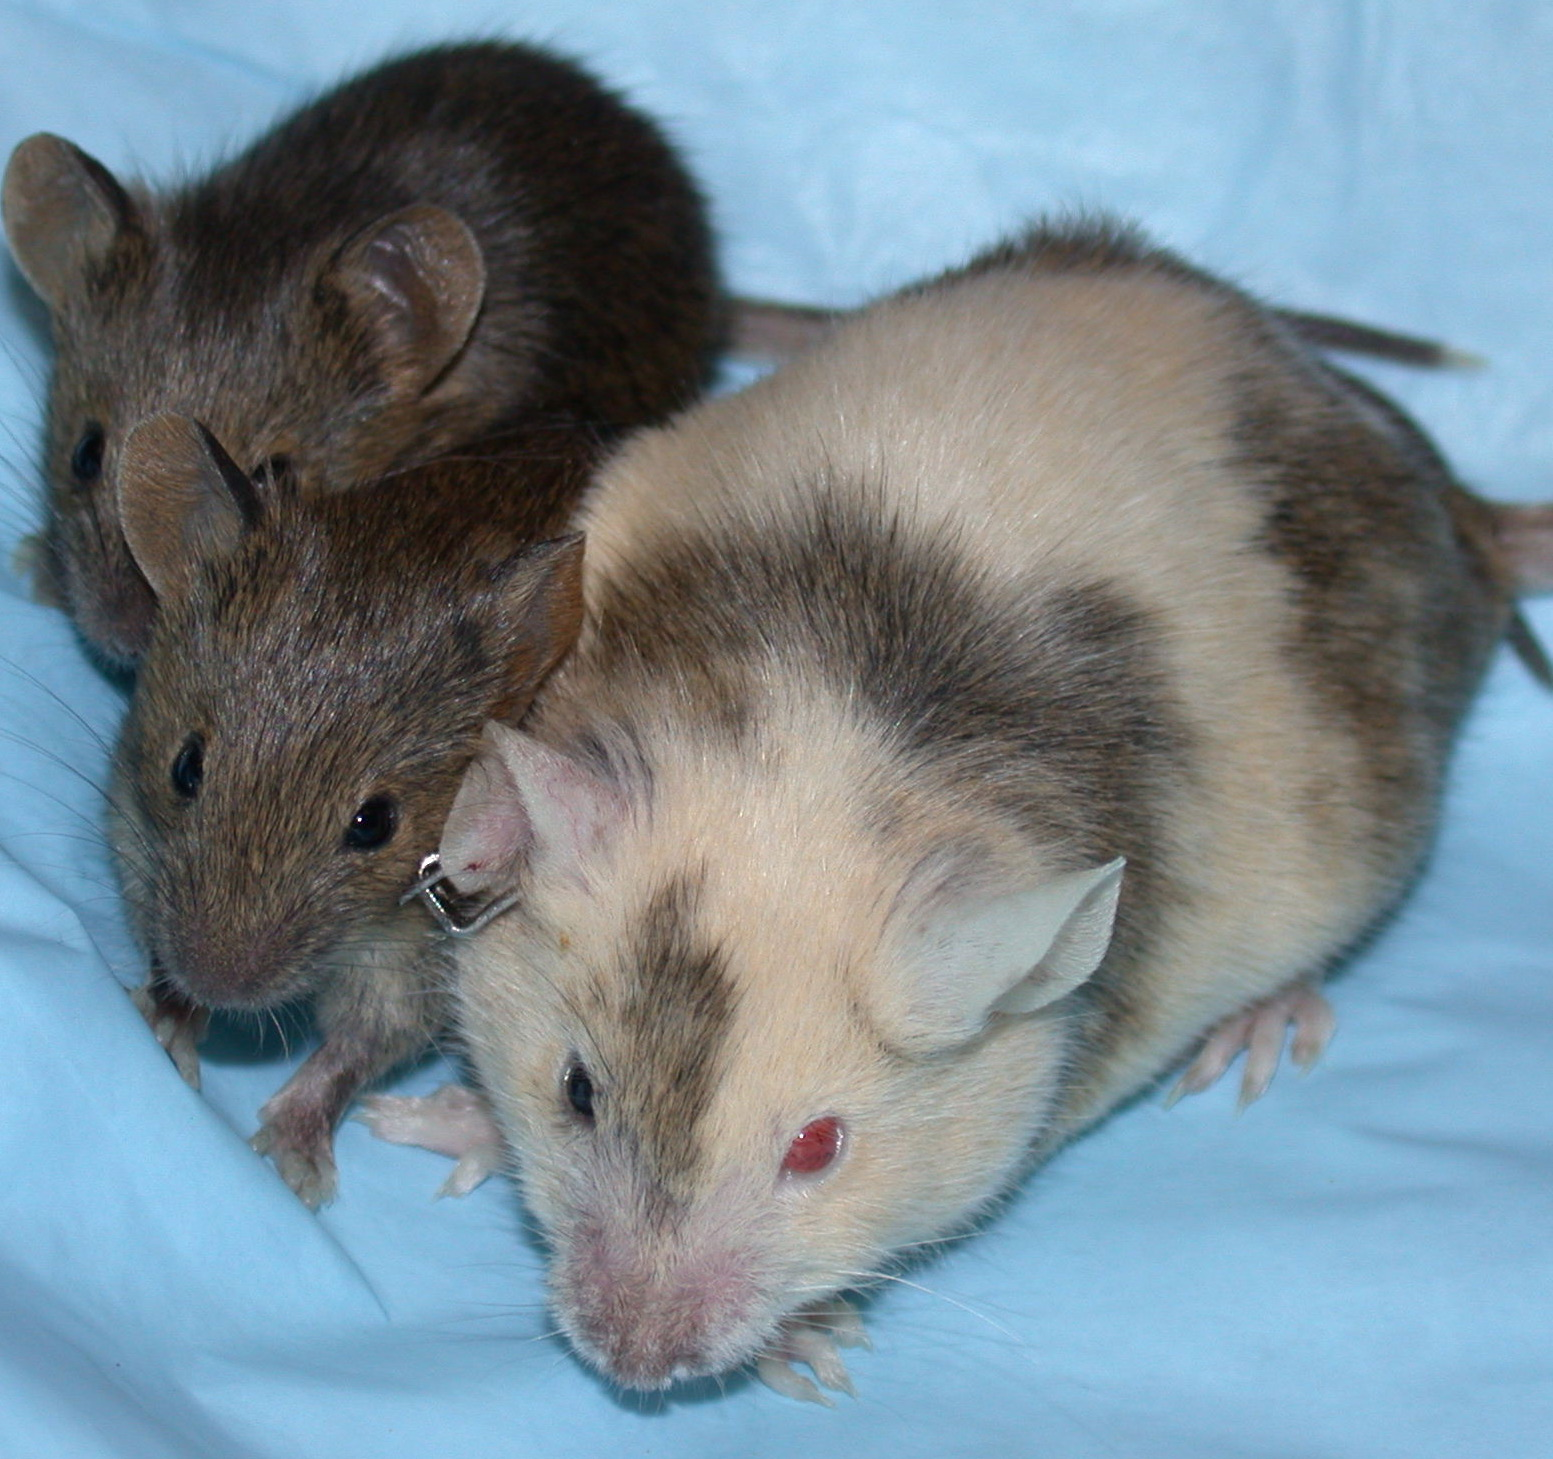 Some chimeras, like the blotched mouse shown, are created through genetic modification techniques like gene targeting.